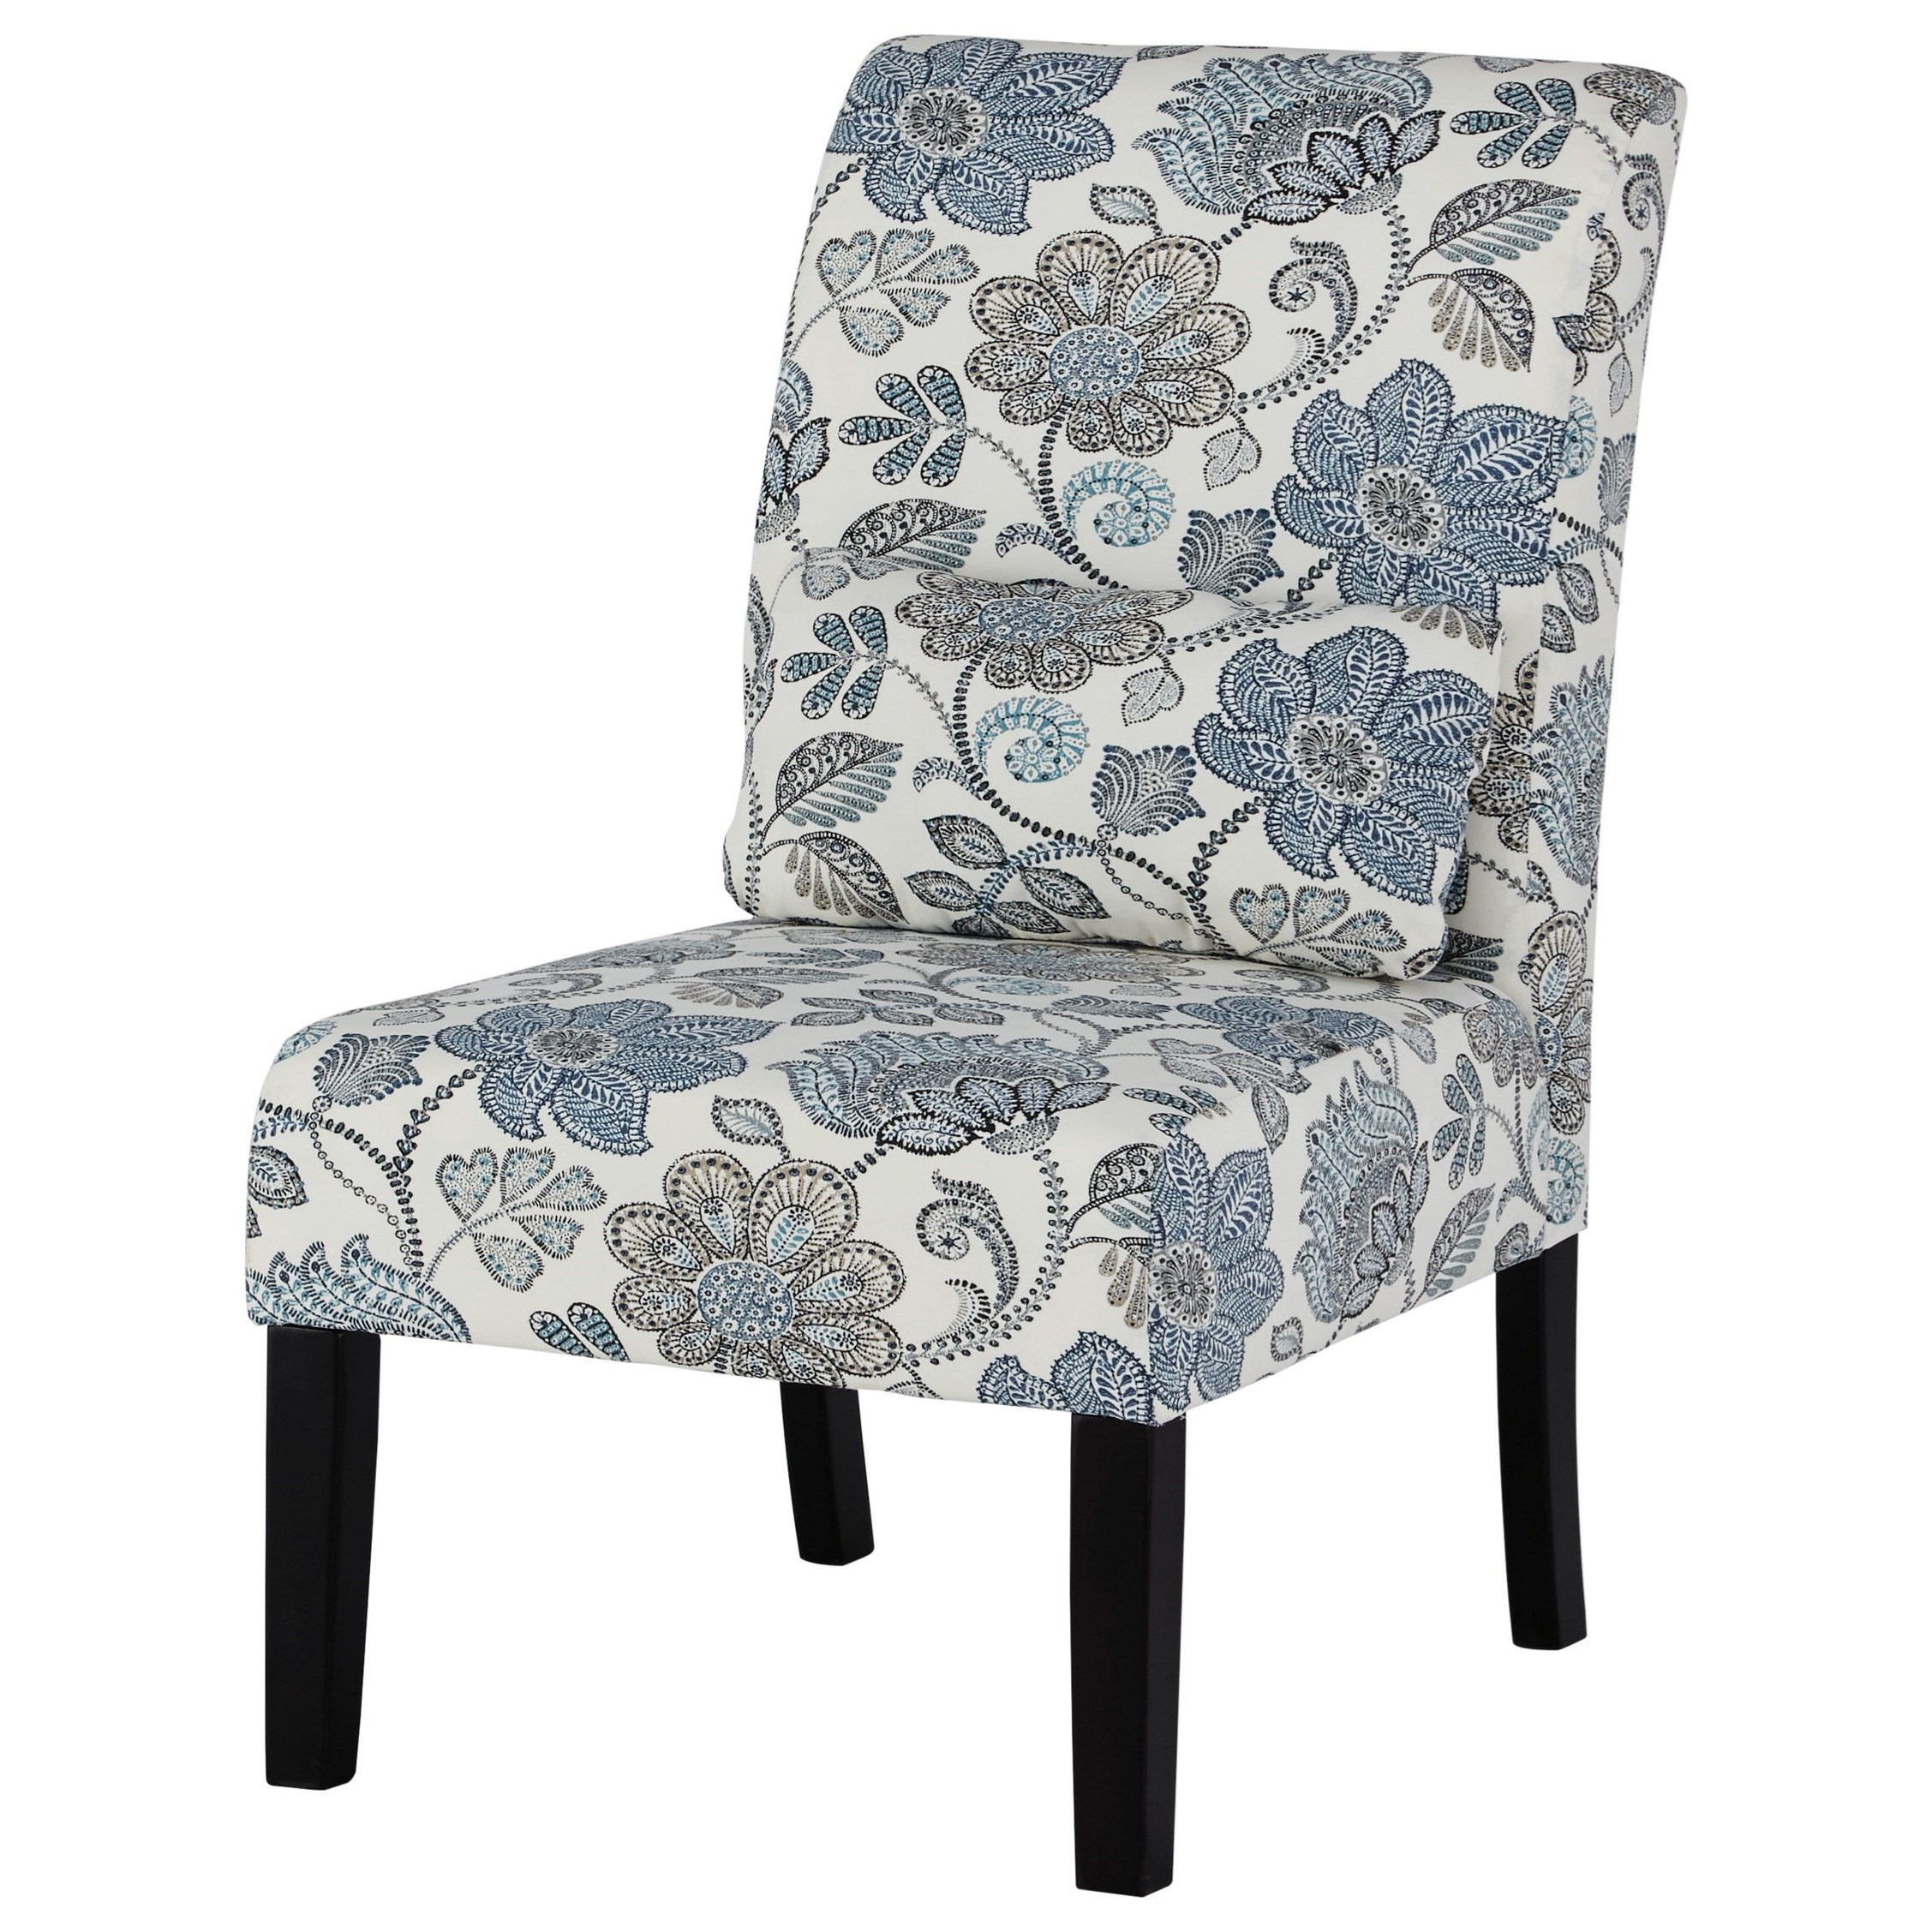 Signature Design by Ashley Sesto Accent Chair - Item Number: A3000070